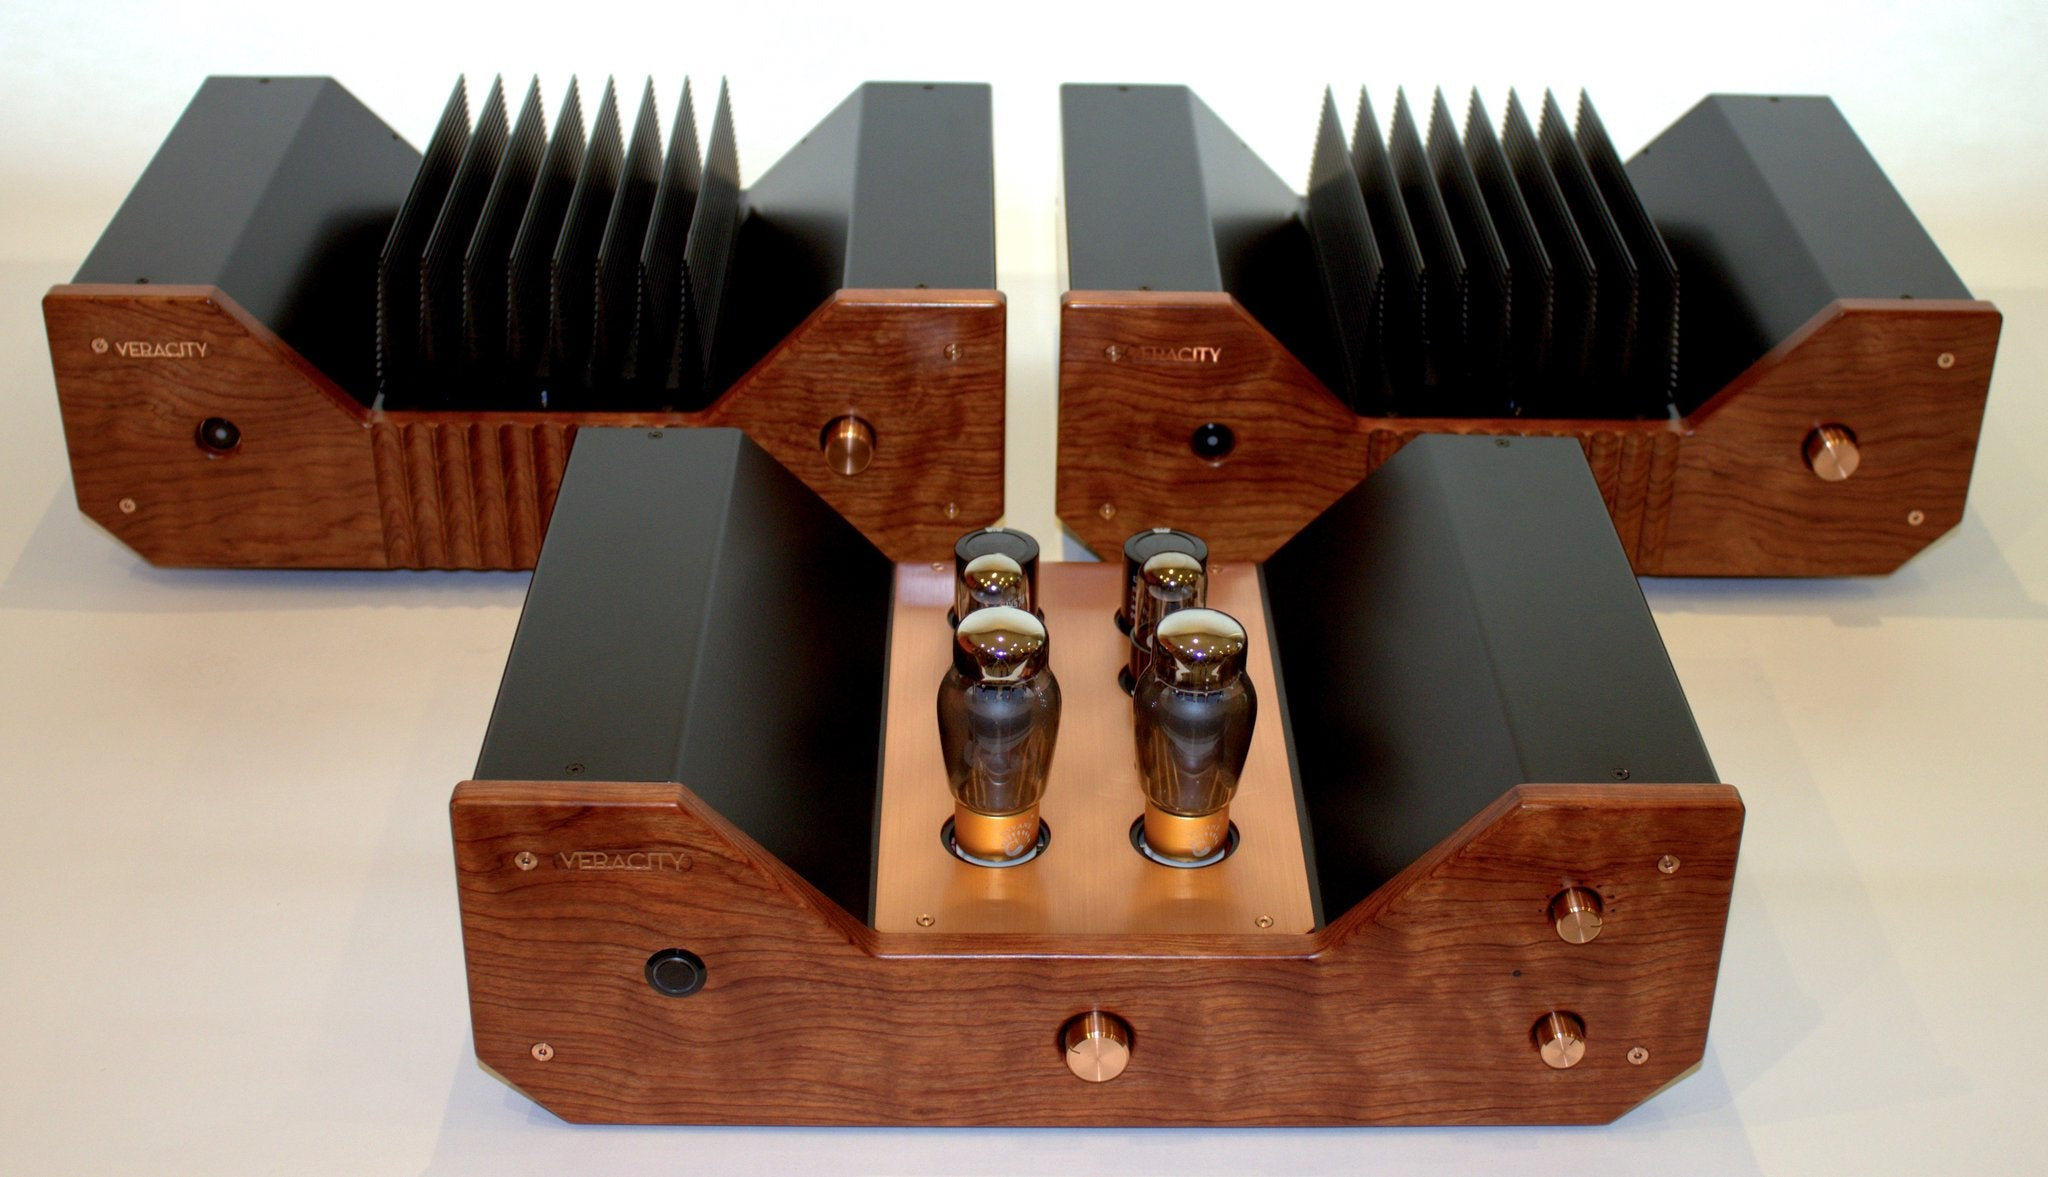 Veracity hand-built audio products